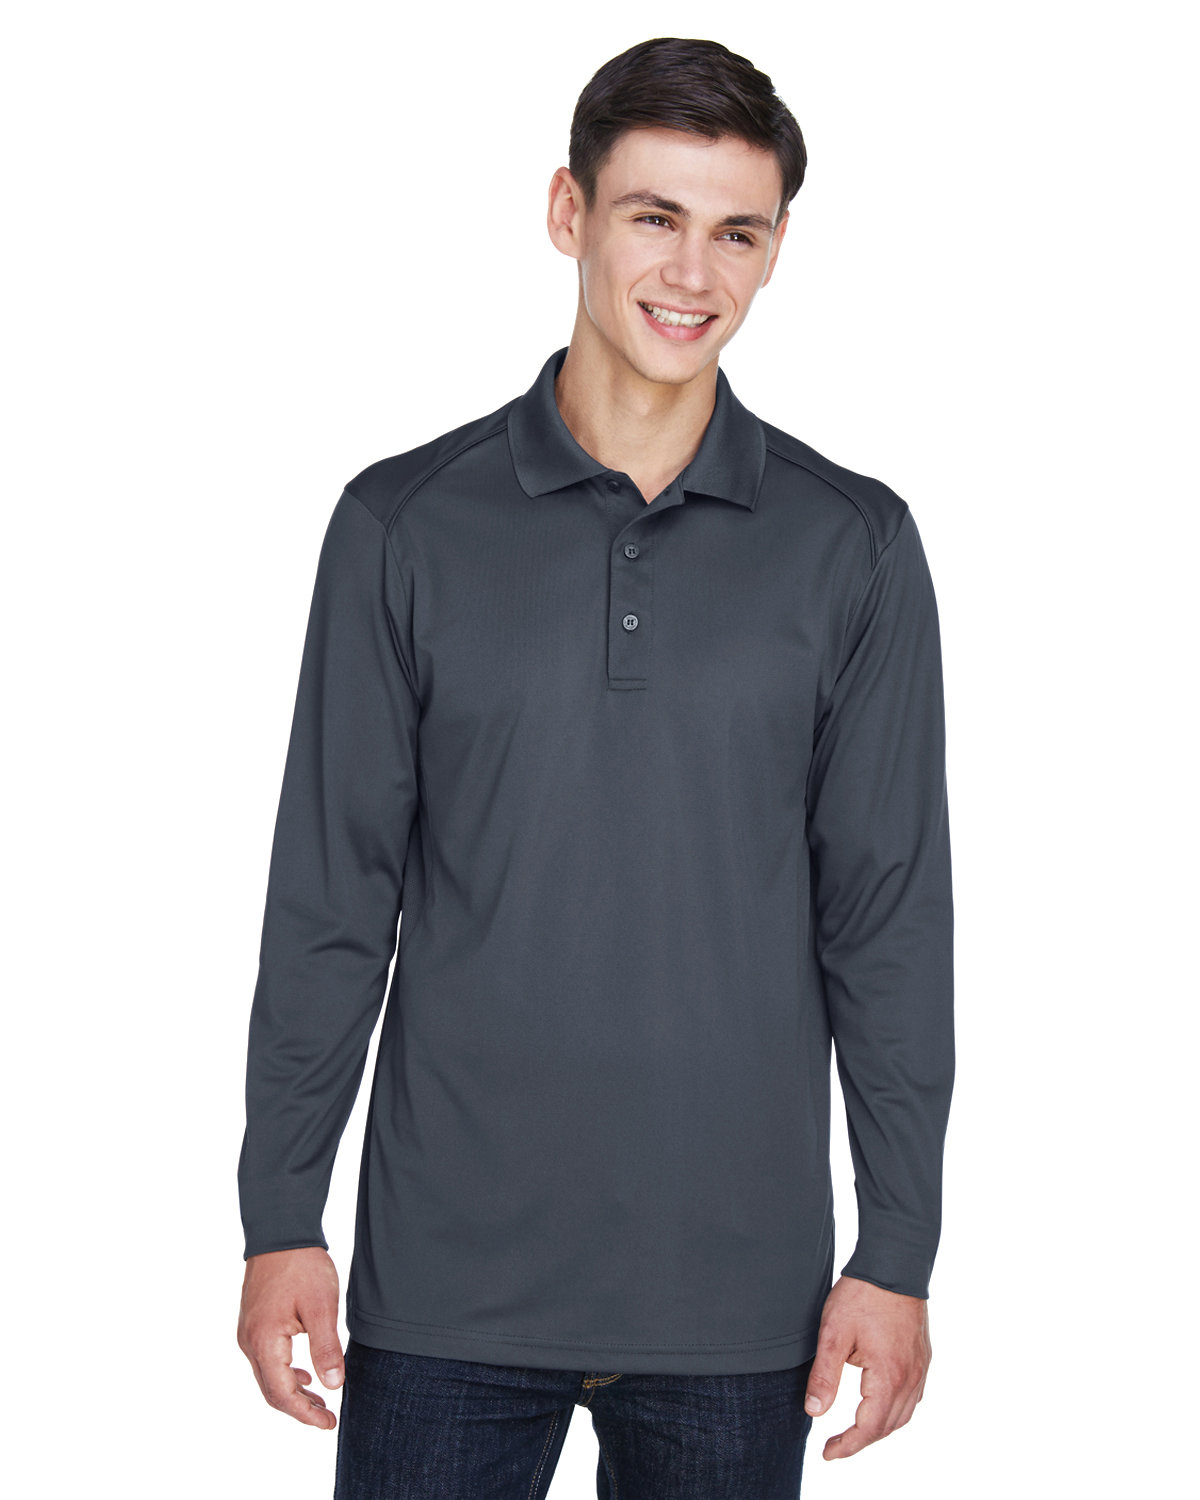 Extreme Men's Eperformance™ Snag Protection Long-Sleeve Polo CARBON